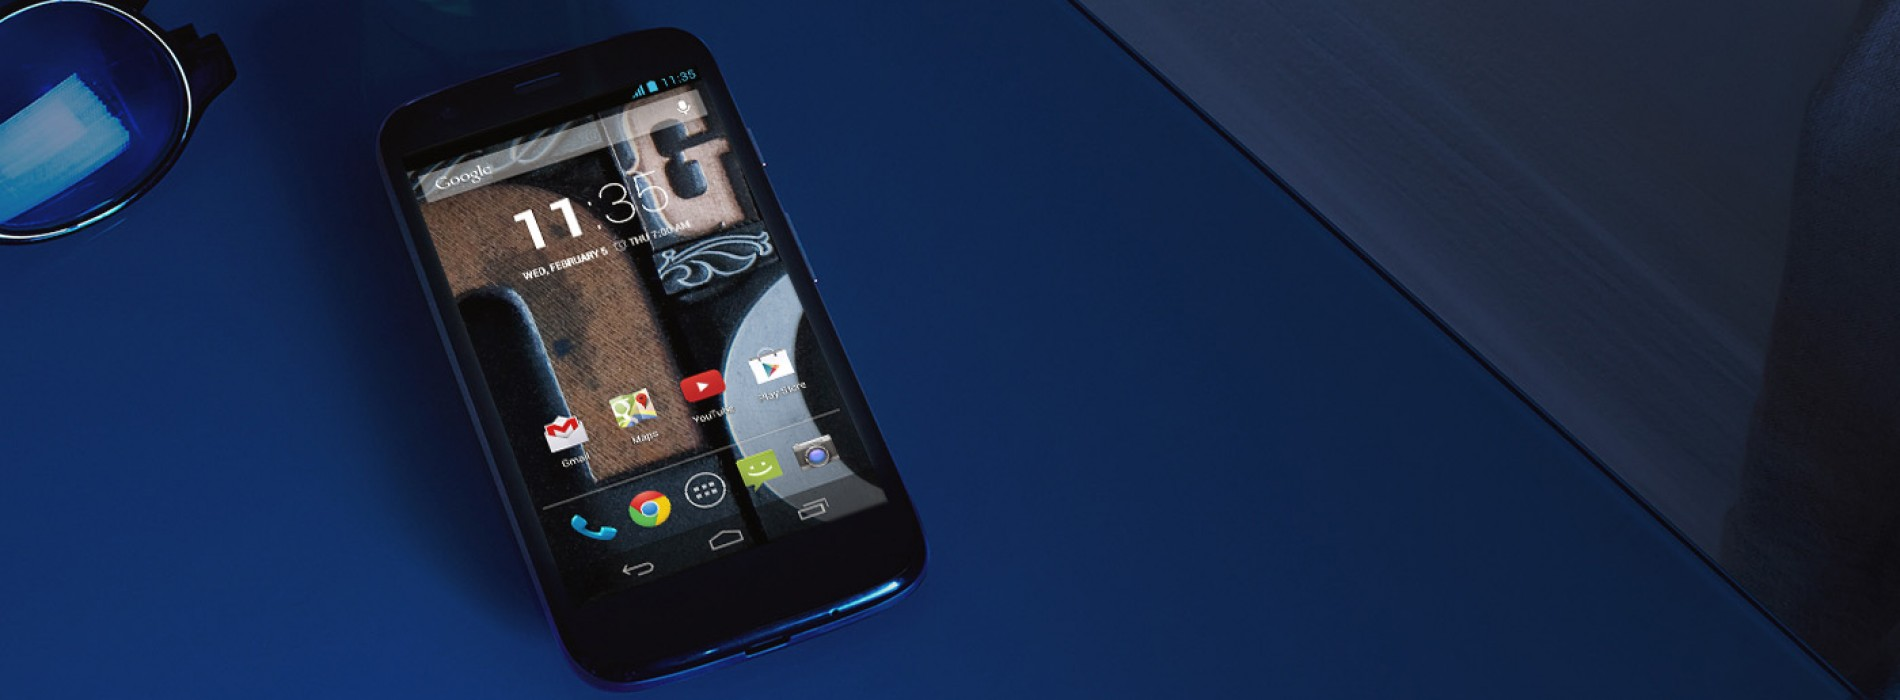 Moto G to sell as low as $179 without contract in U.S.